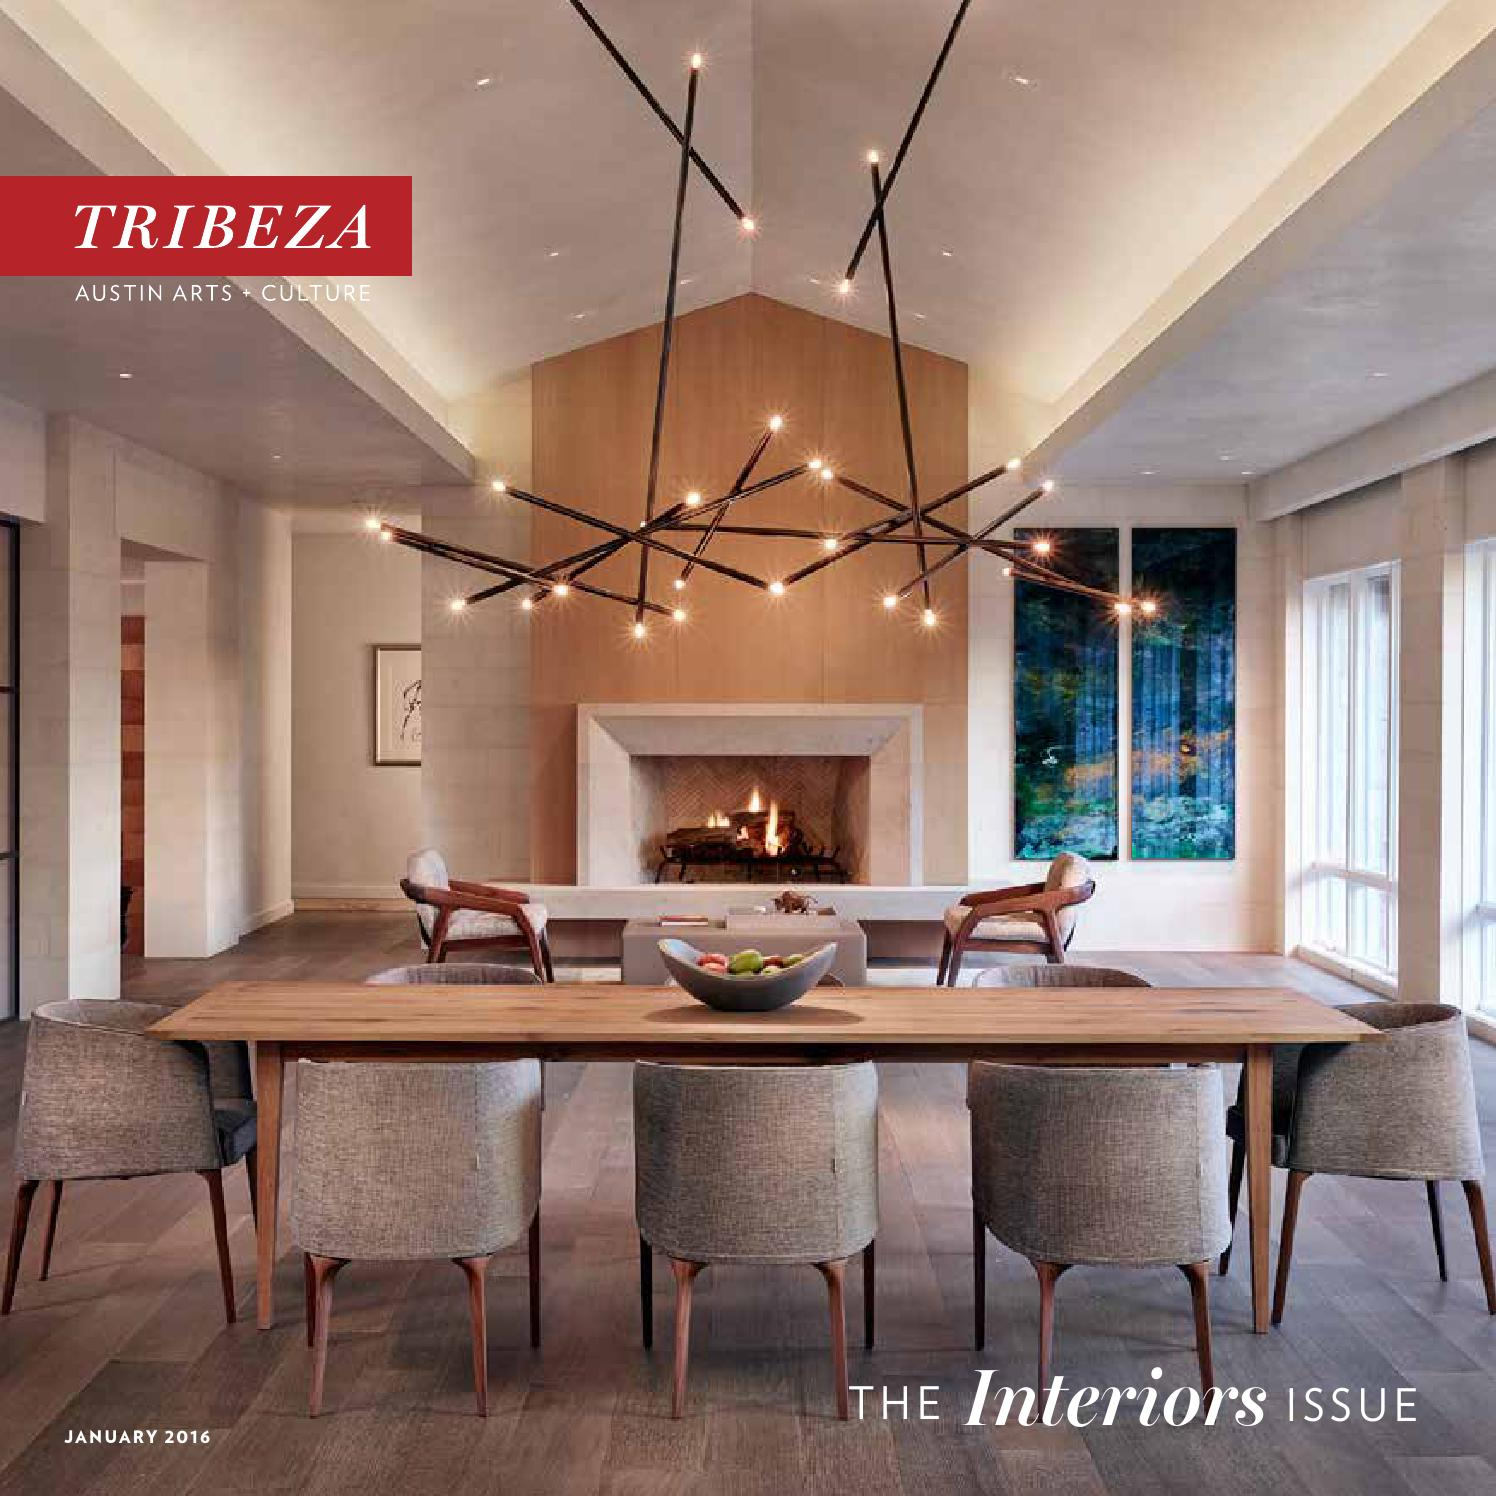 January 2016 Interiors Issue By TRIBEZA Austin Curated